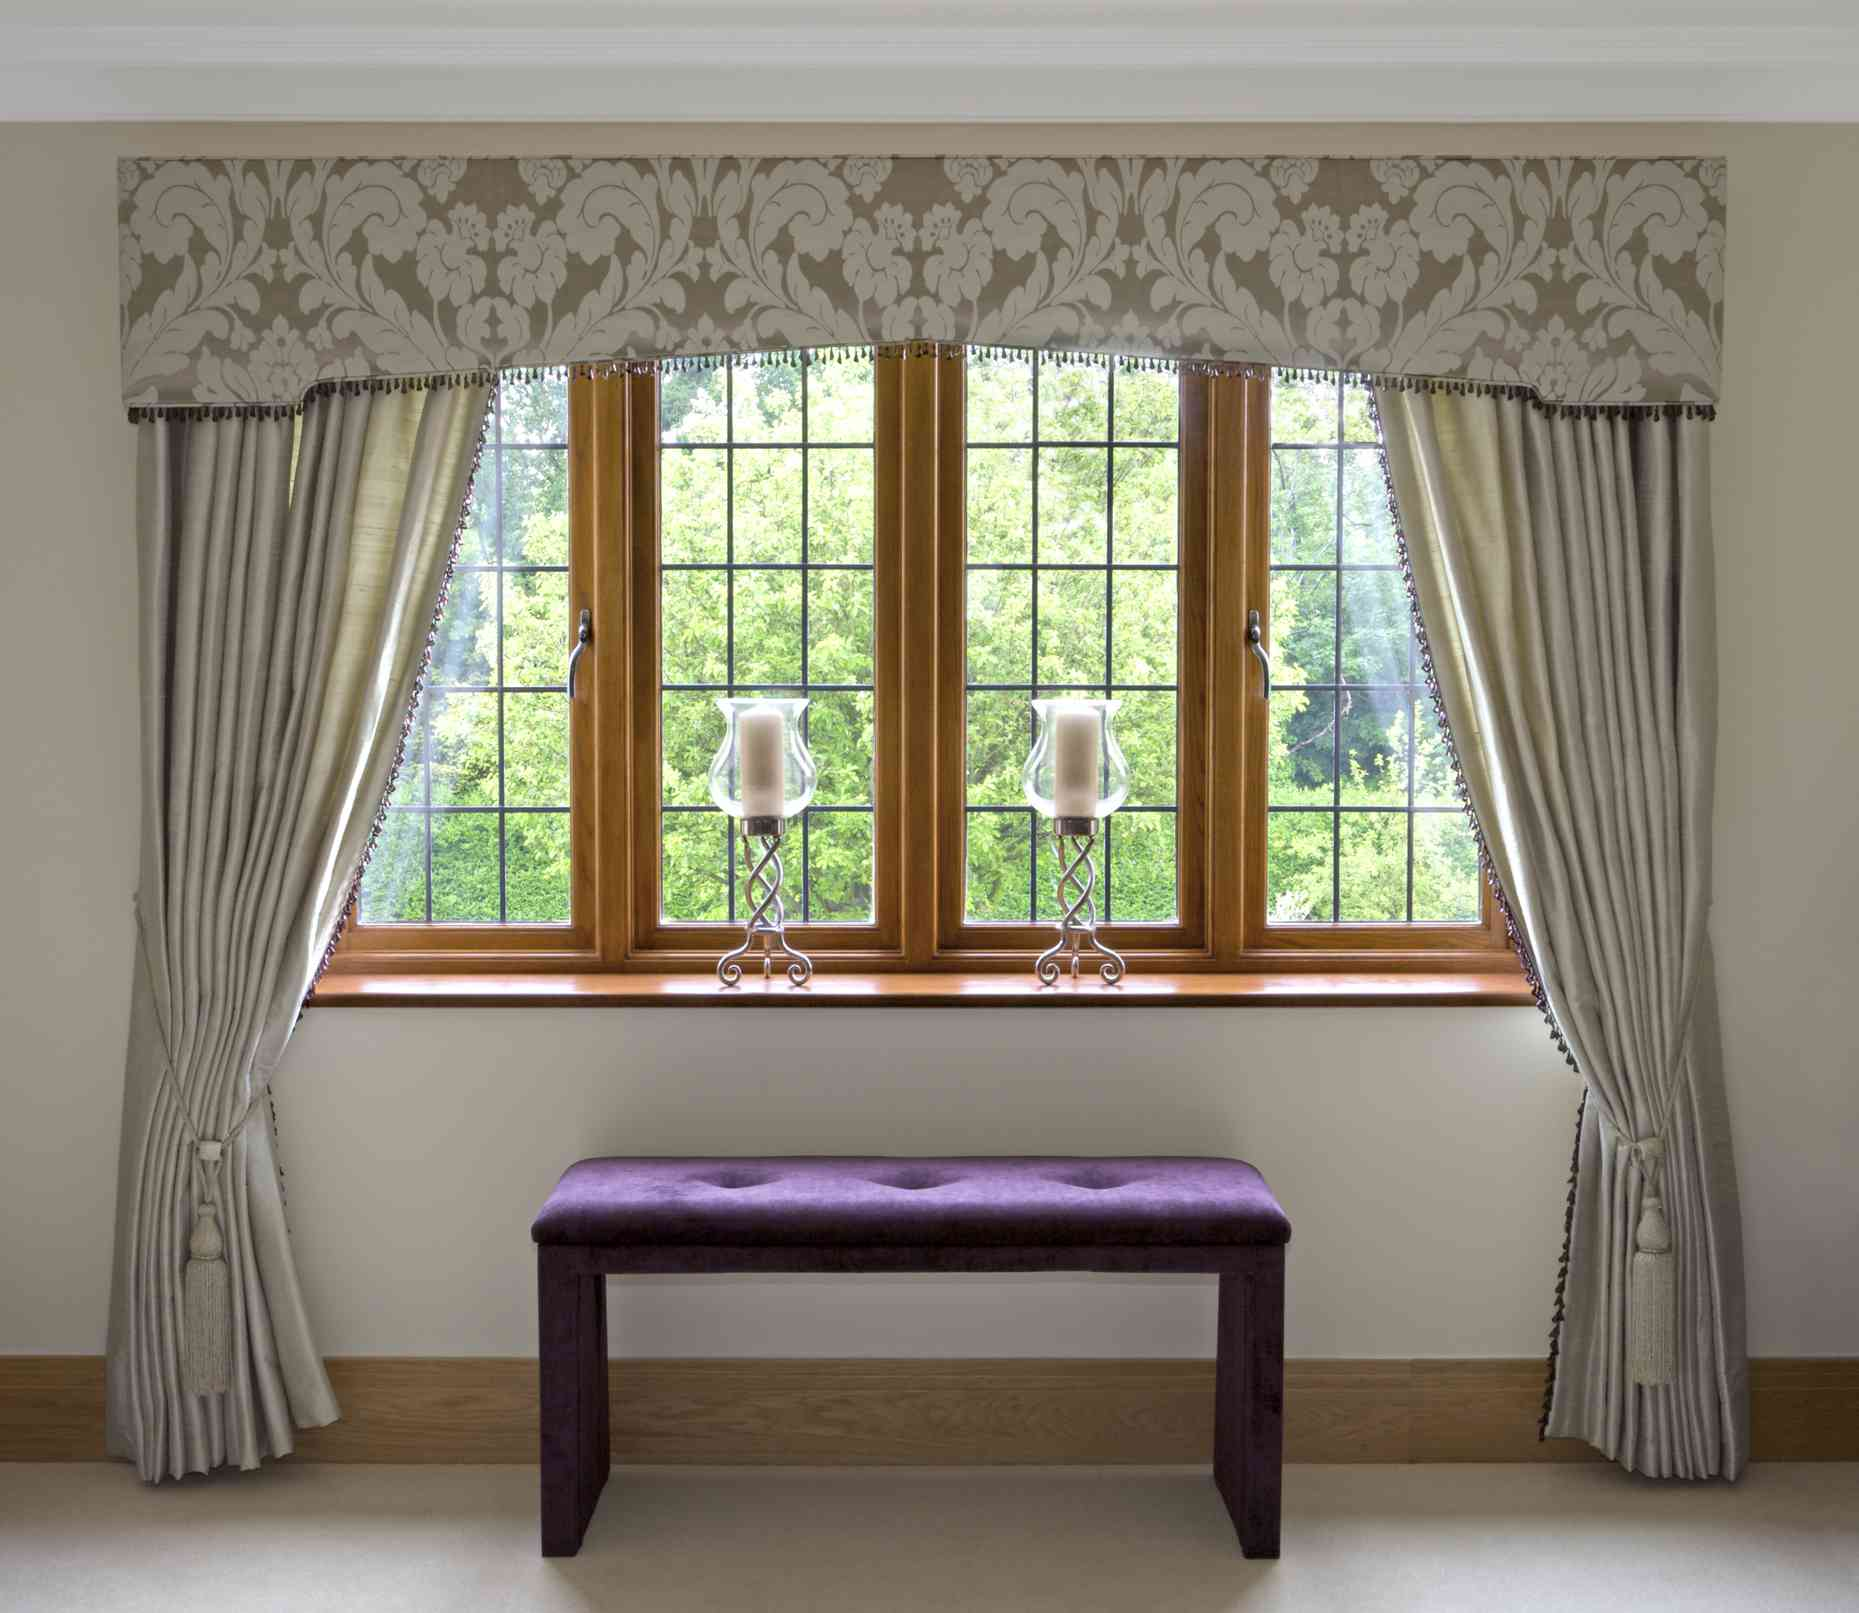 elegante curtains sequined p tuck x expand valance gold light to click window treatment